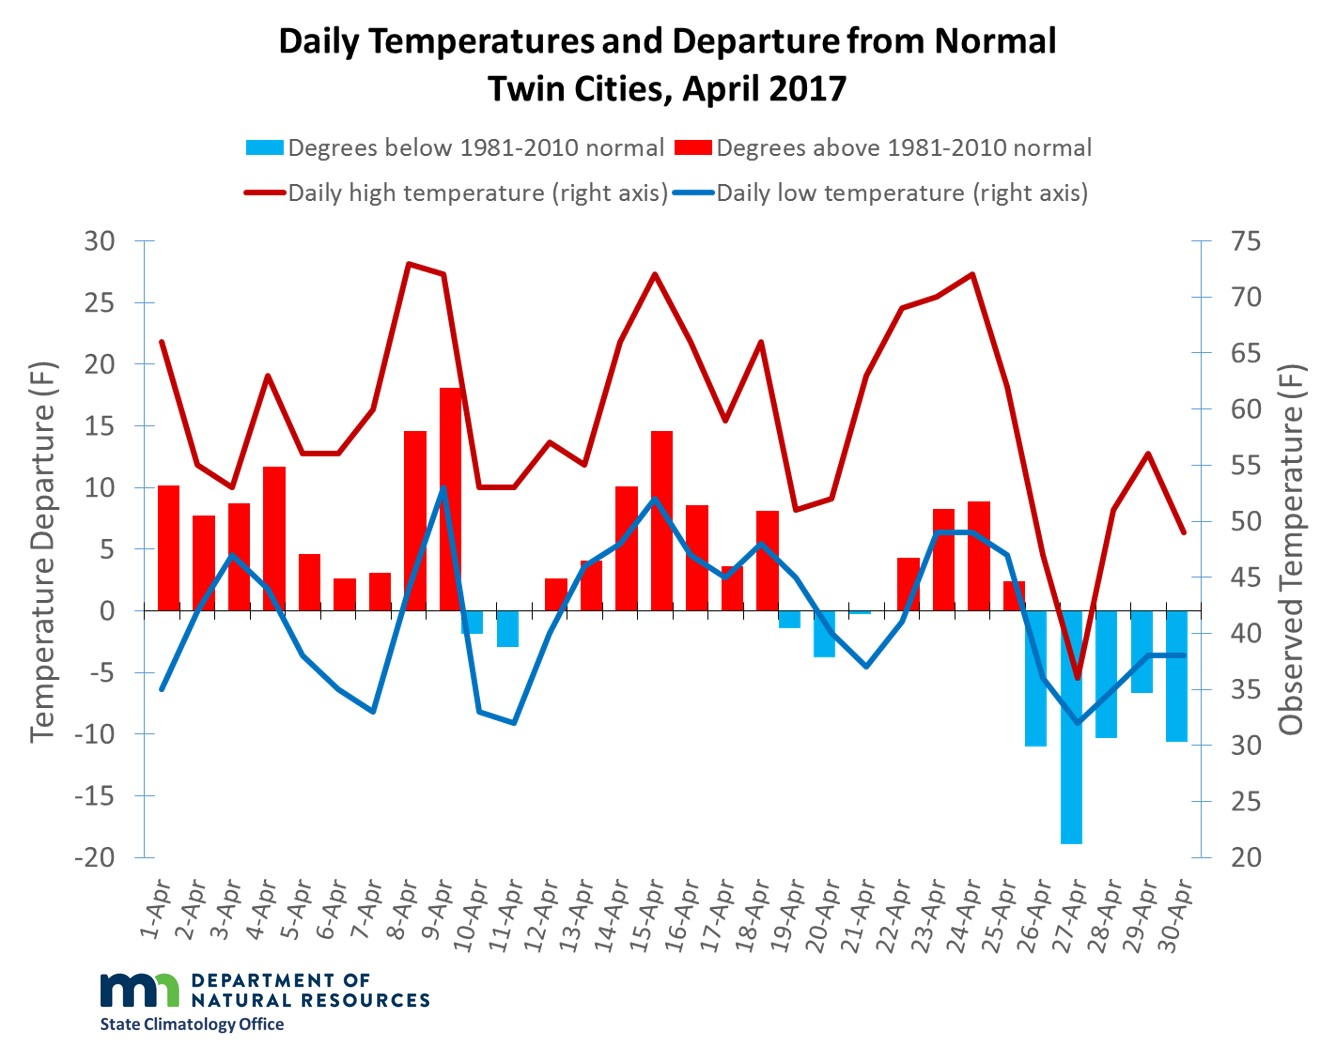 Graph of April 2017 temperatures and departures in the Twin Cities